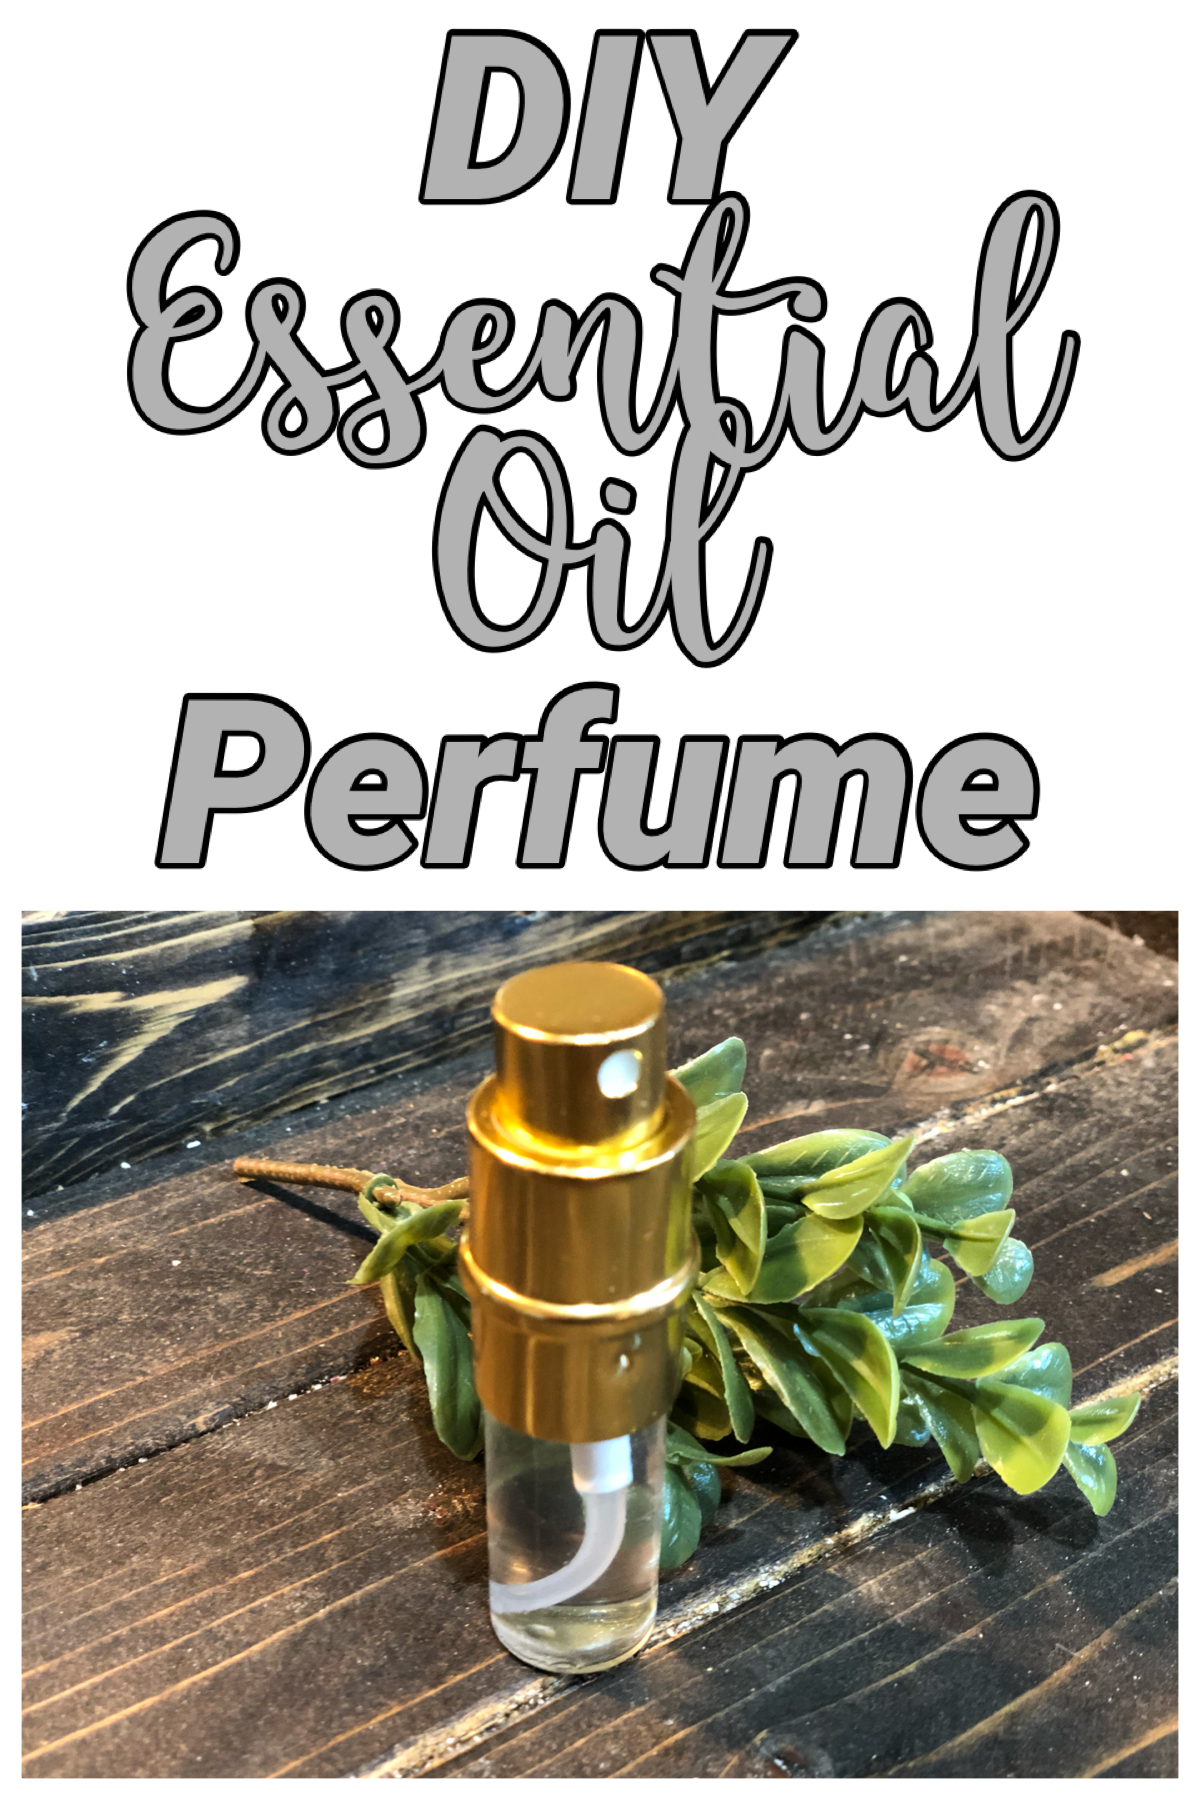 Hey guys, I'm back with another great essntial oil recipe idea! This DIY Essential Oil Perf can be made in 2 minutes! FrugallyFantastic.com